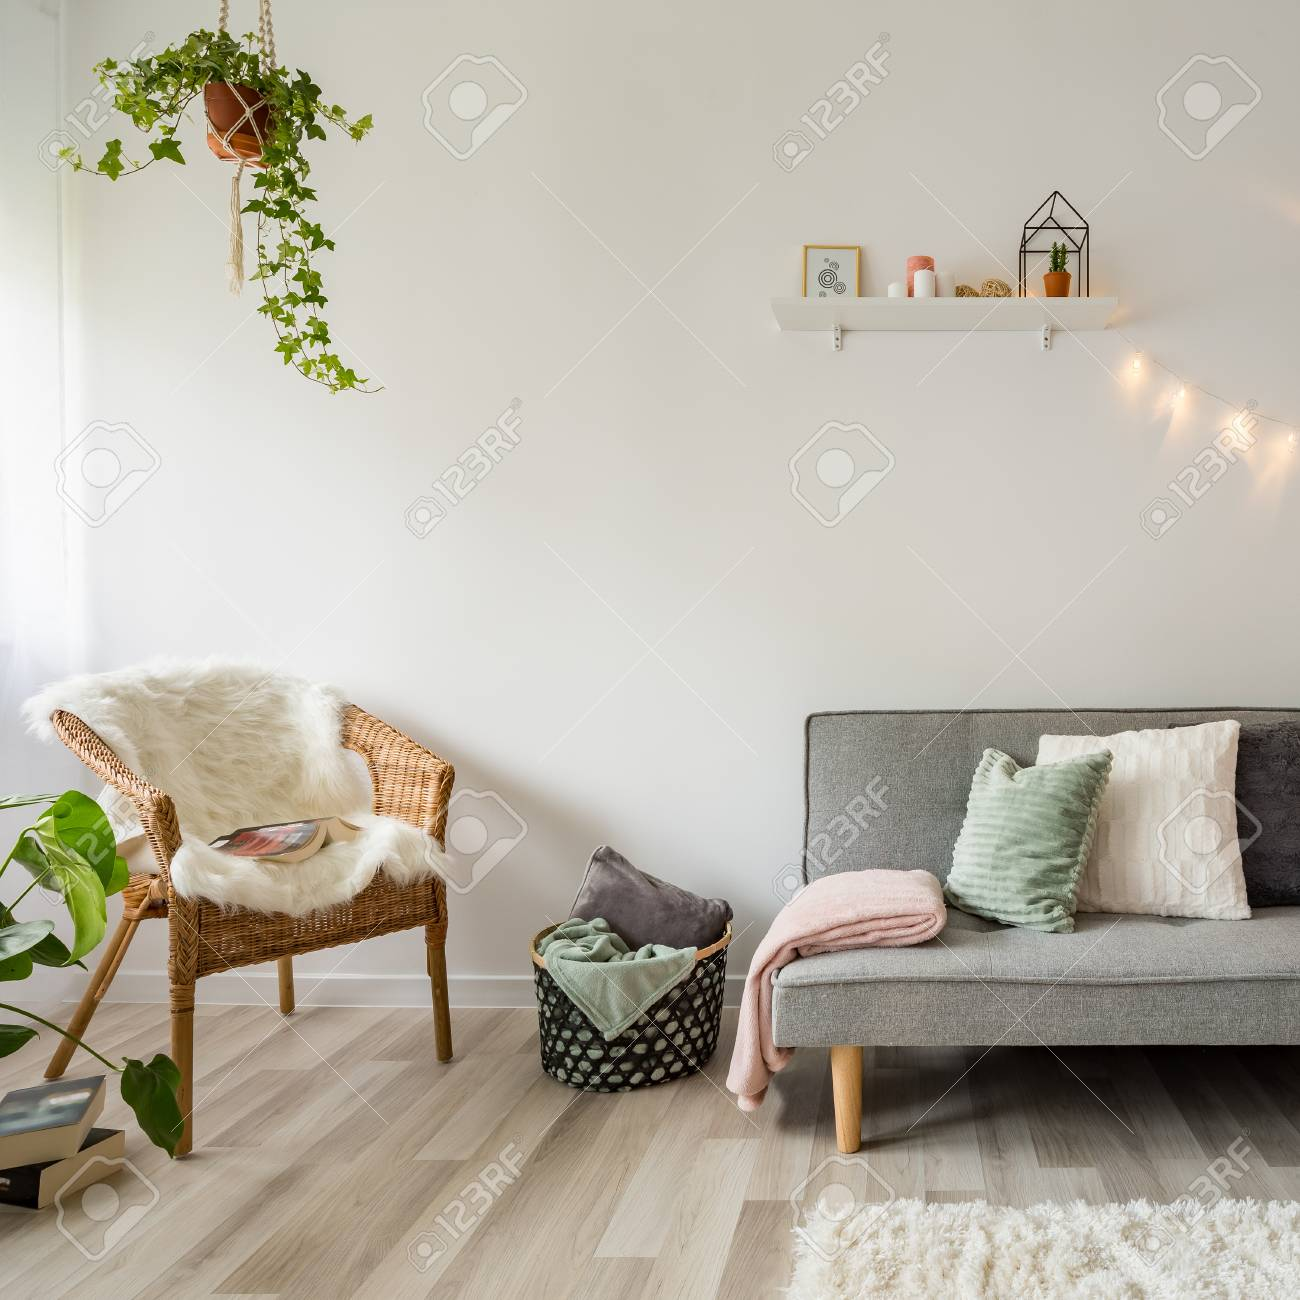 Gray Sofa Coffee Table And Wicker Chair In Scandinavian Style Stock Photo Picture And Royalty Free Image Image 105300214